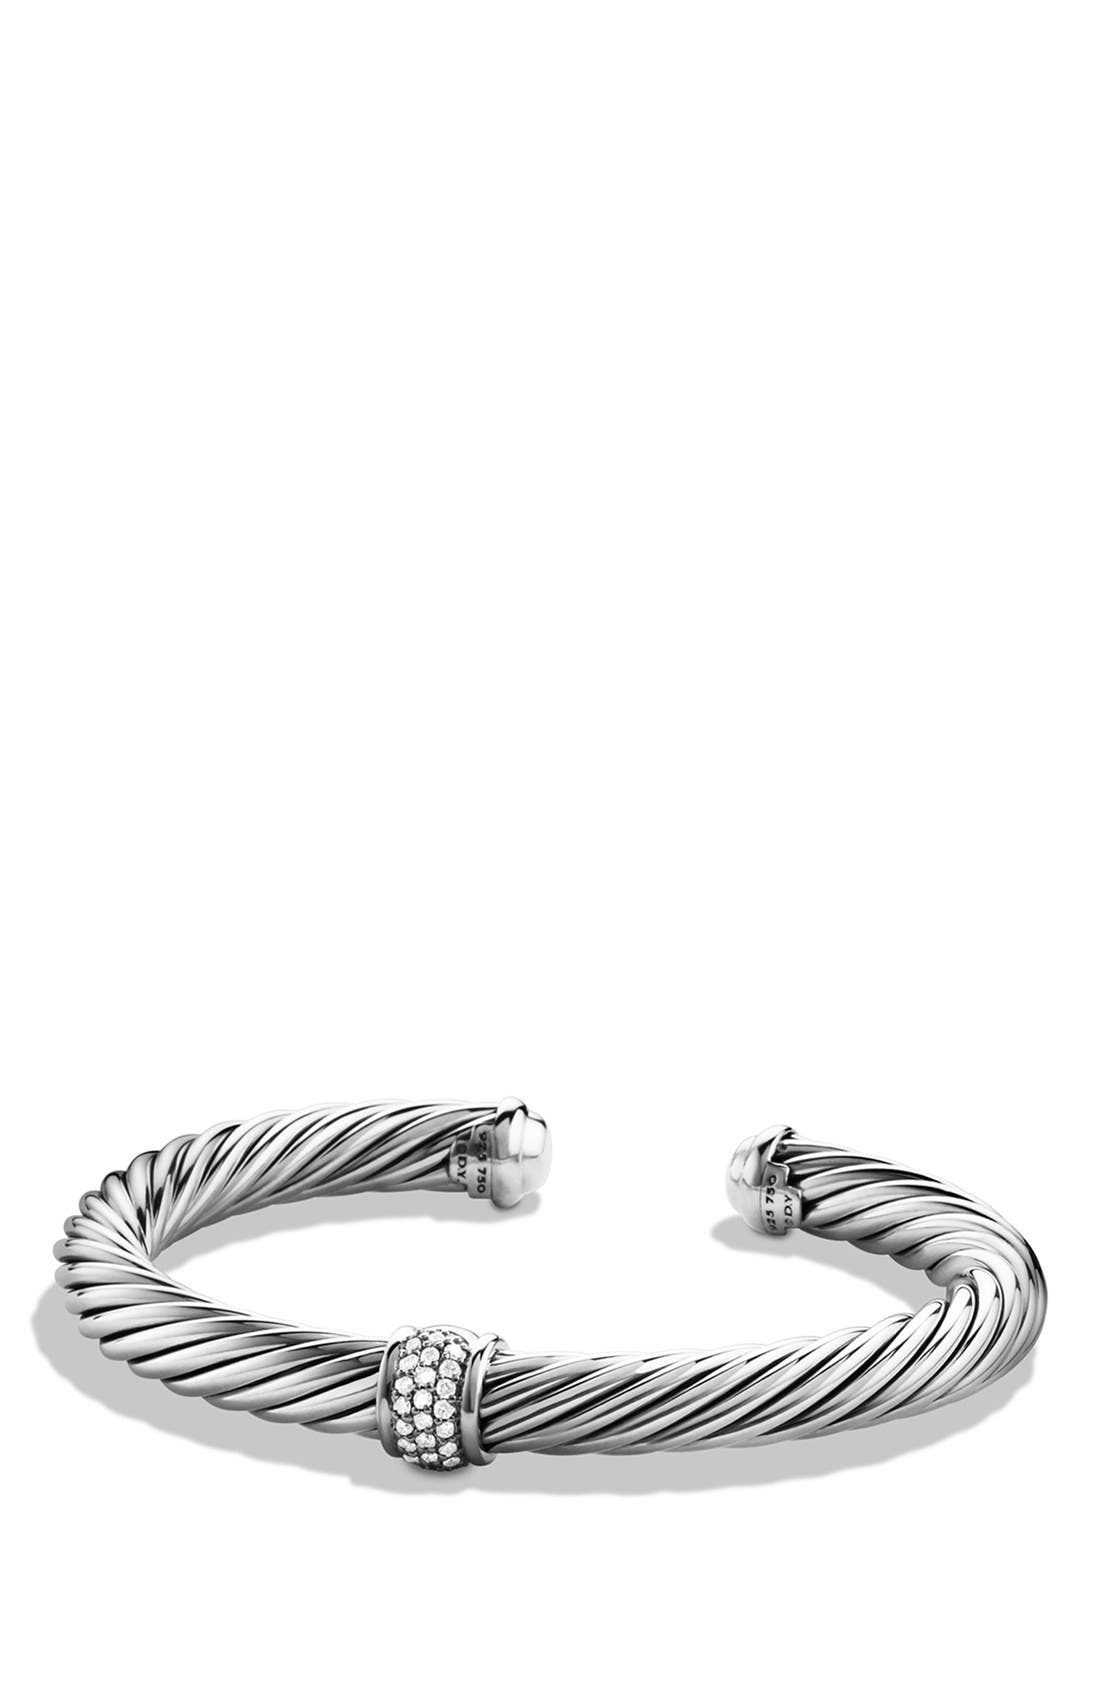 'Cable Classics' Bracelet with Diamonds and White Gold,                         Main,                         color, DIAMOND